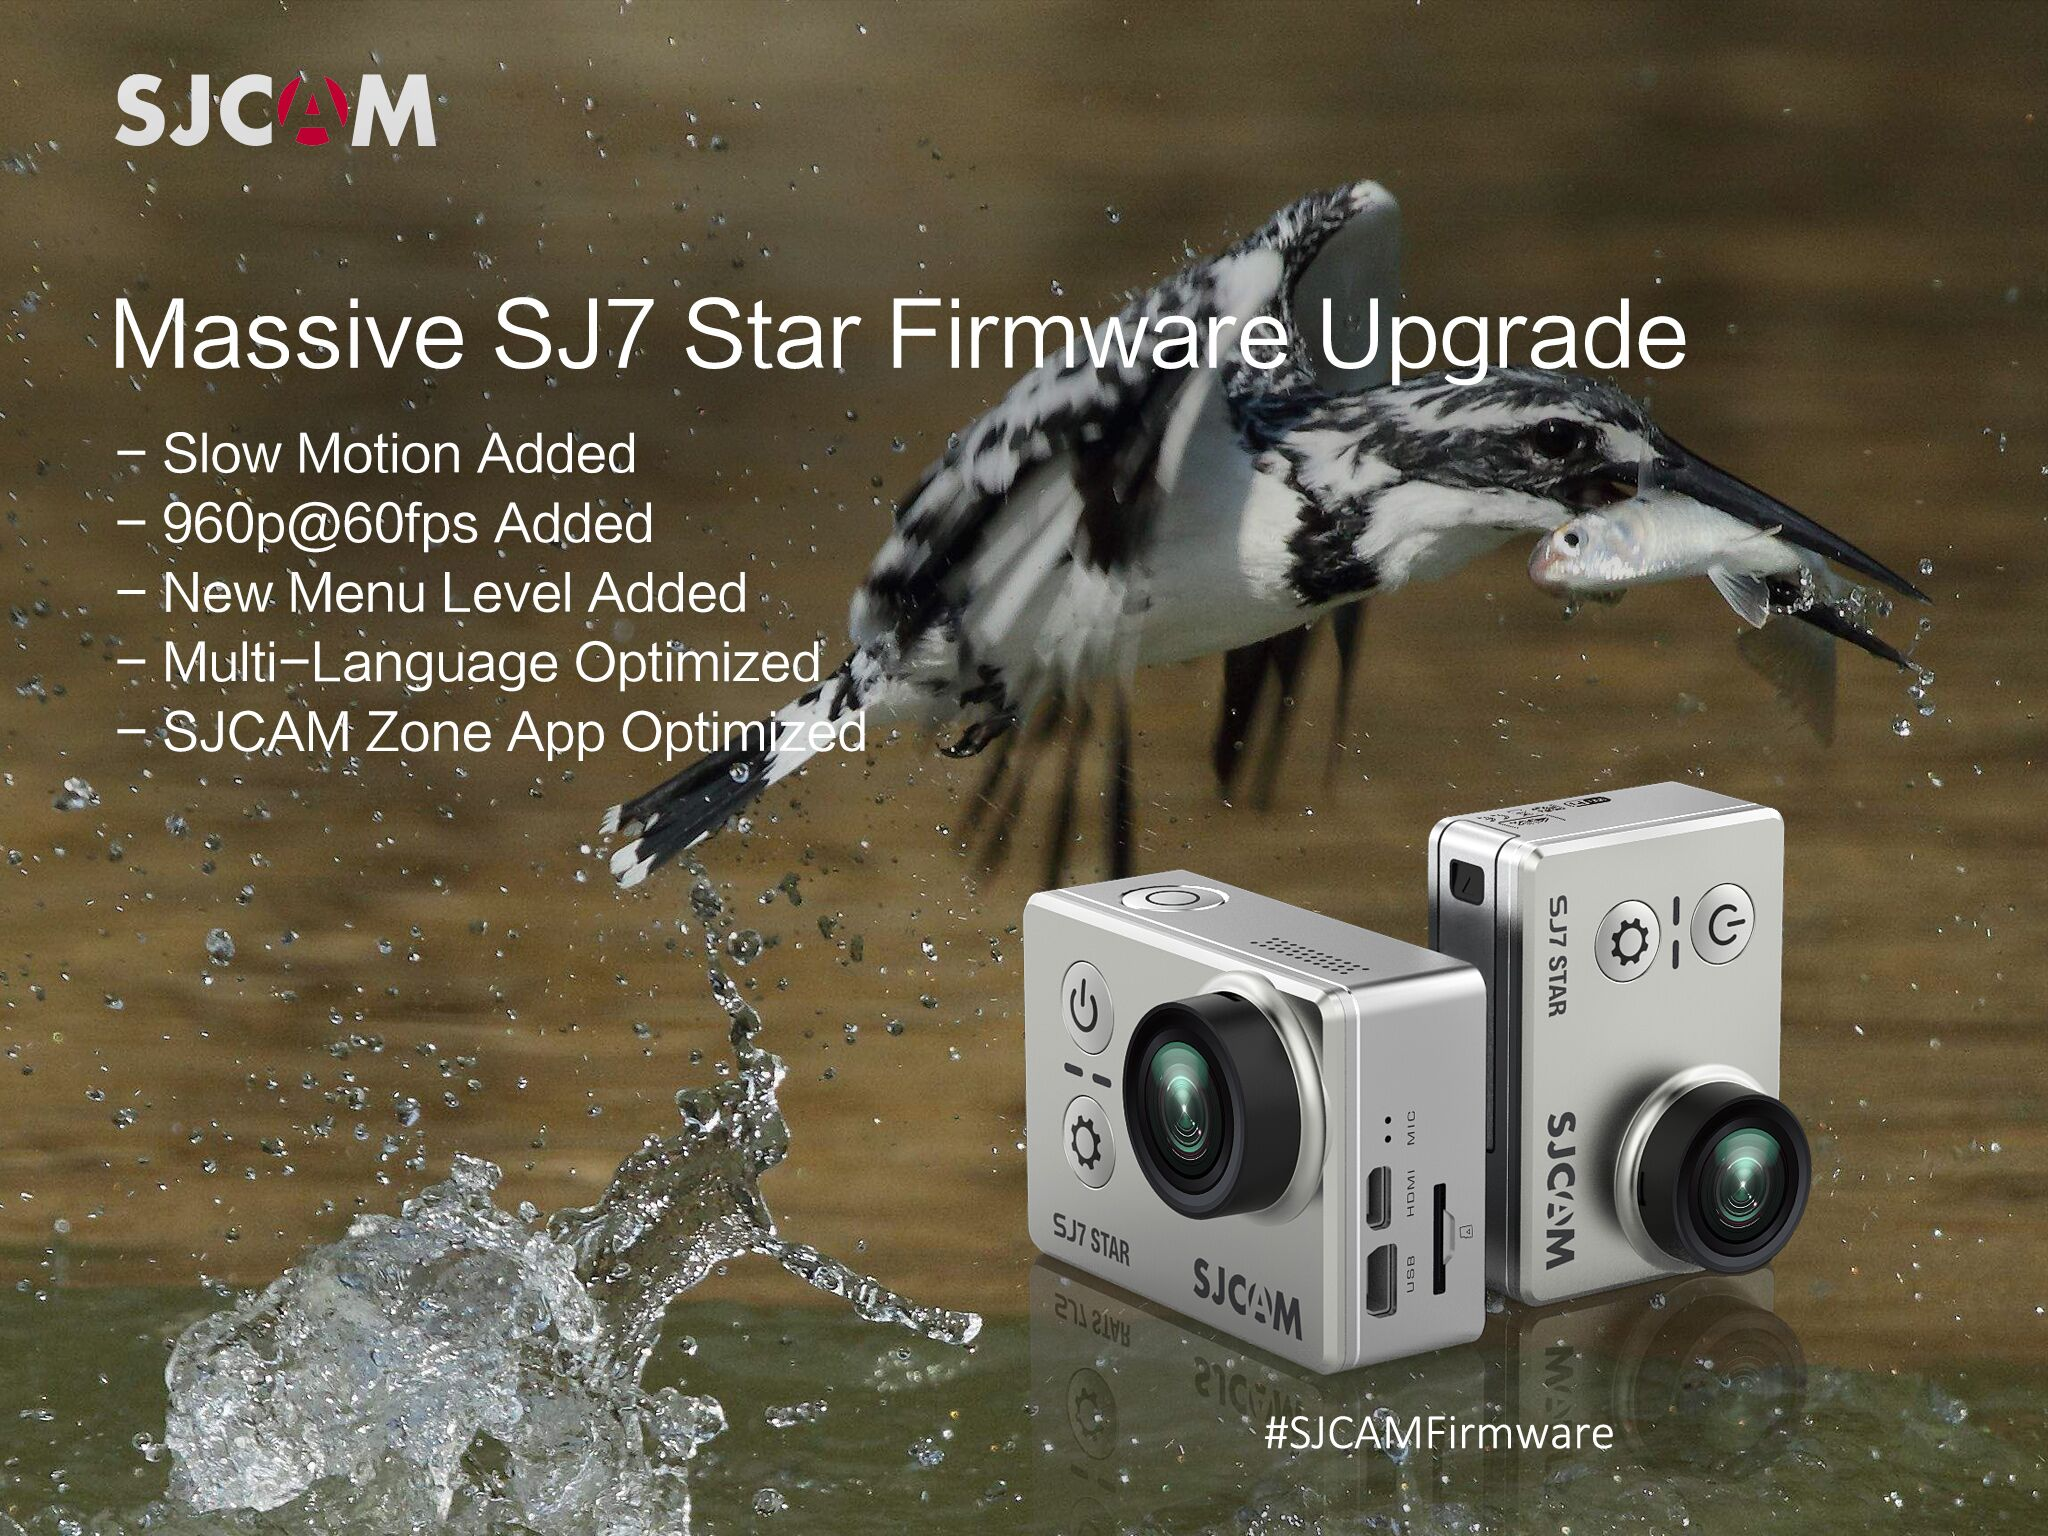 SJCAM SJ7  V1.13 Firmware Upgrade – Massive Must-Have Update